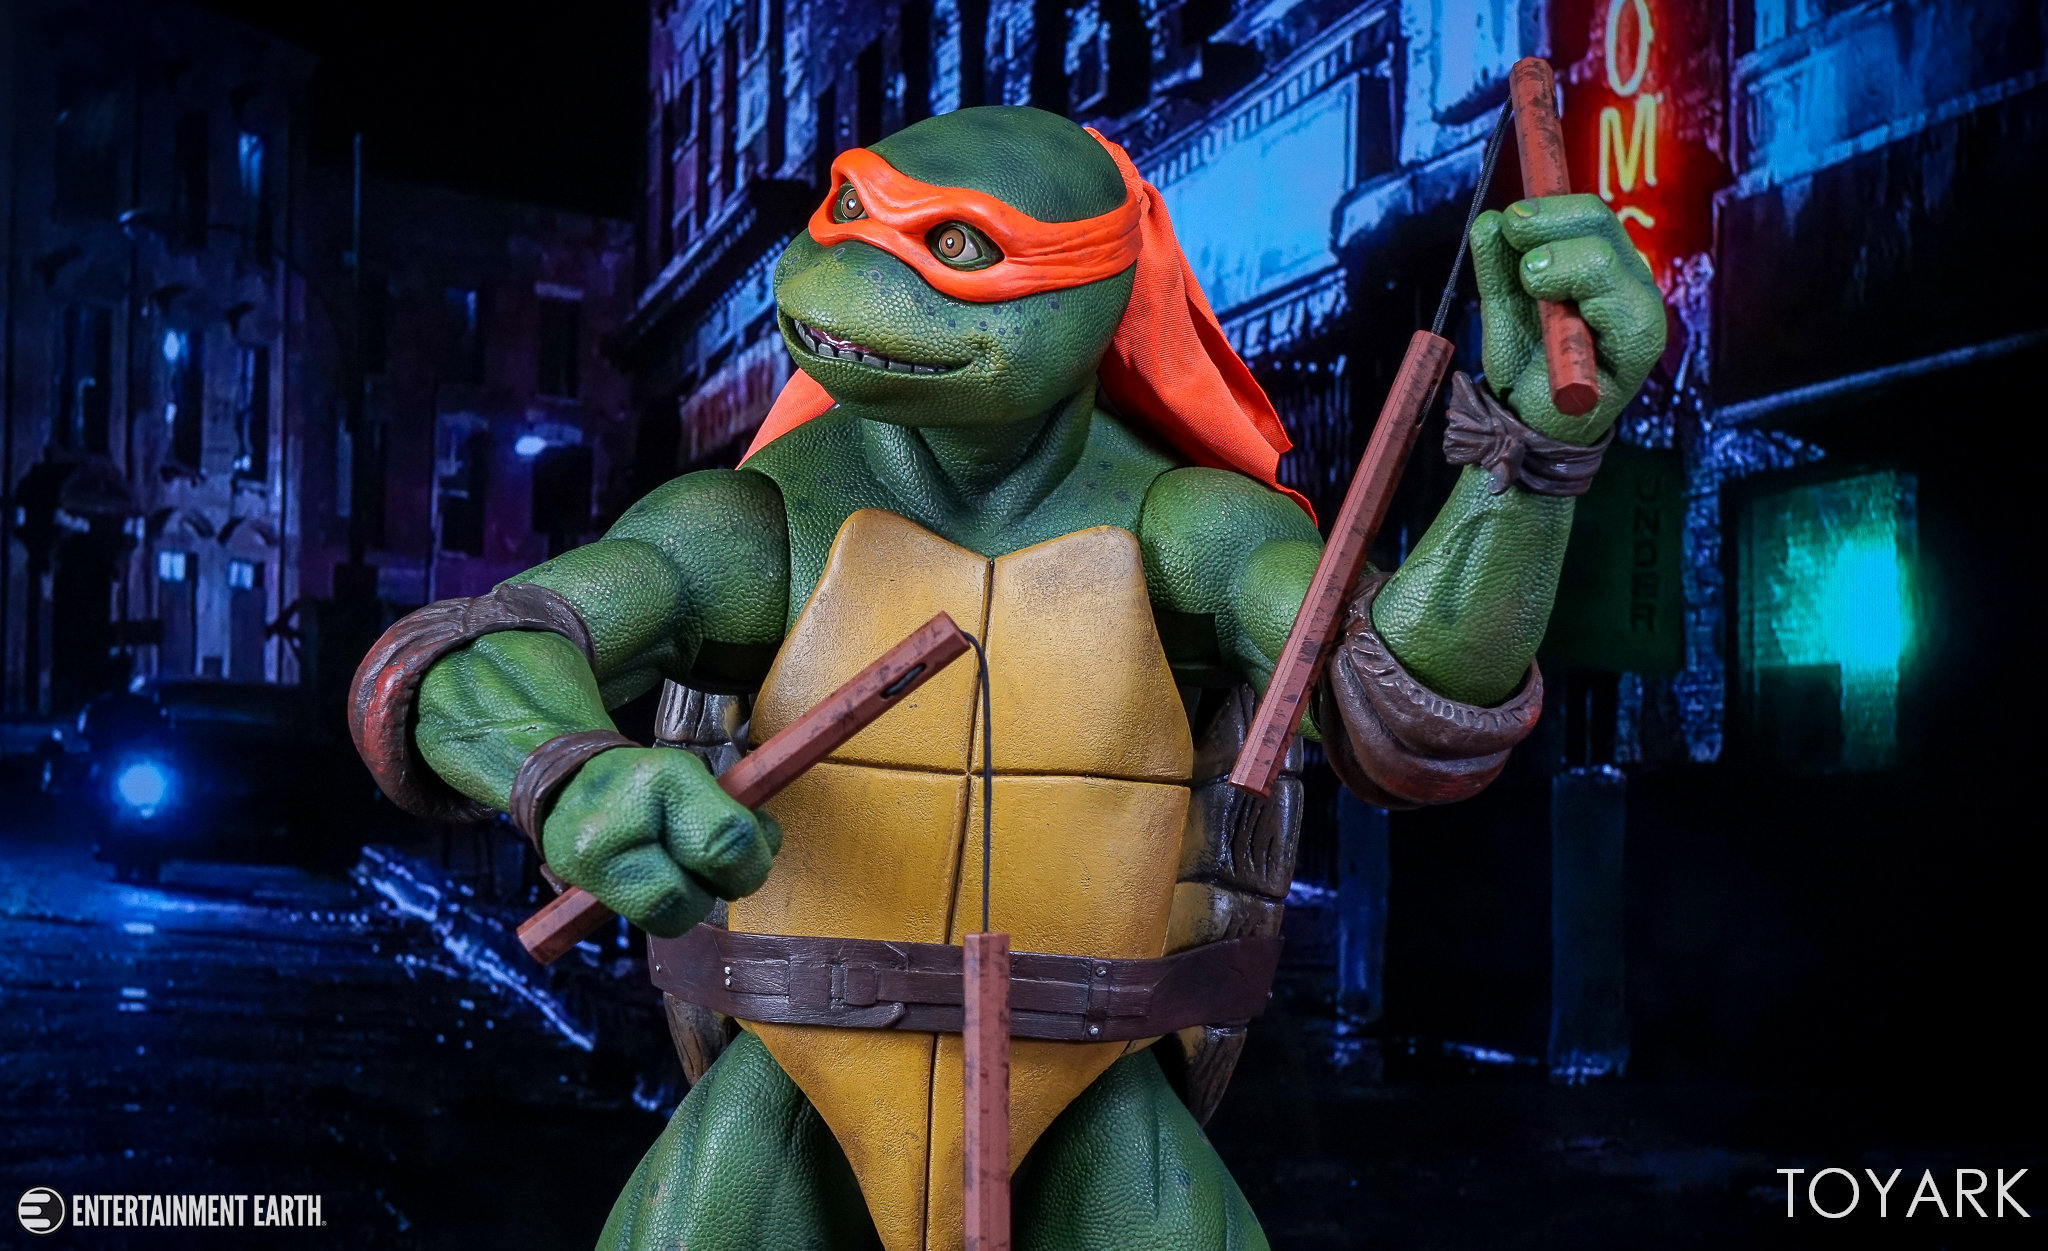 http://news.toyark.com/wp-content/uploads/sites/4/2017/10/NECA-Quarter-Scale-TMNT-Michelangelo-026.jpg